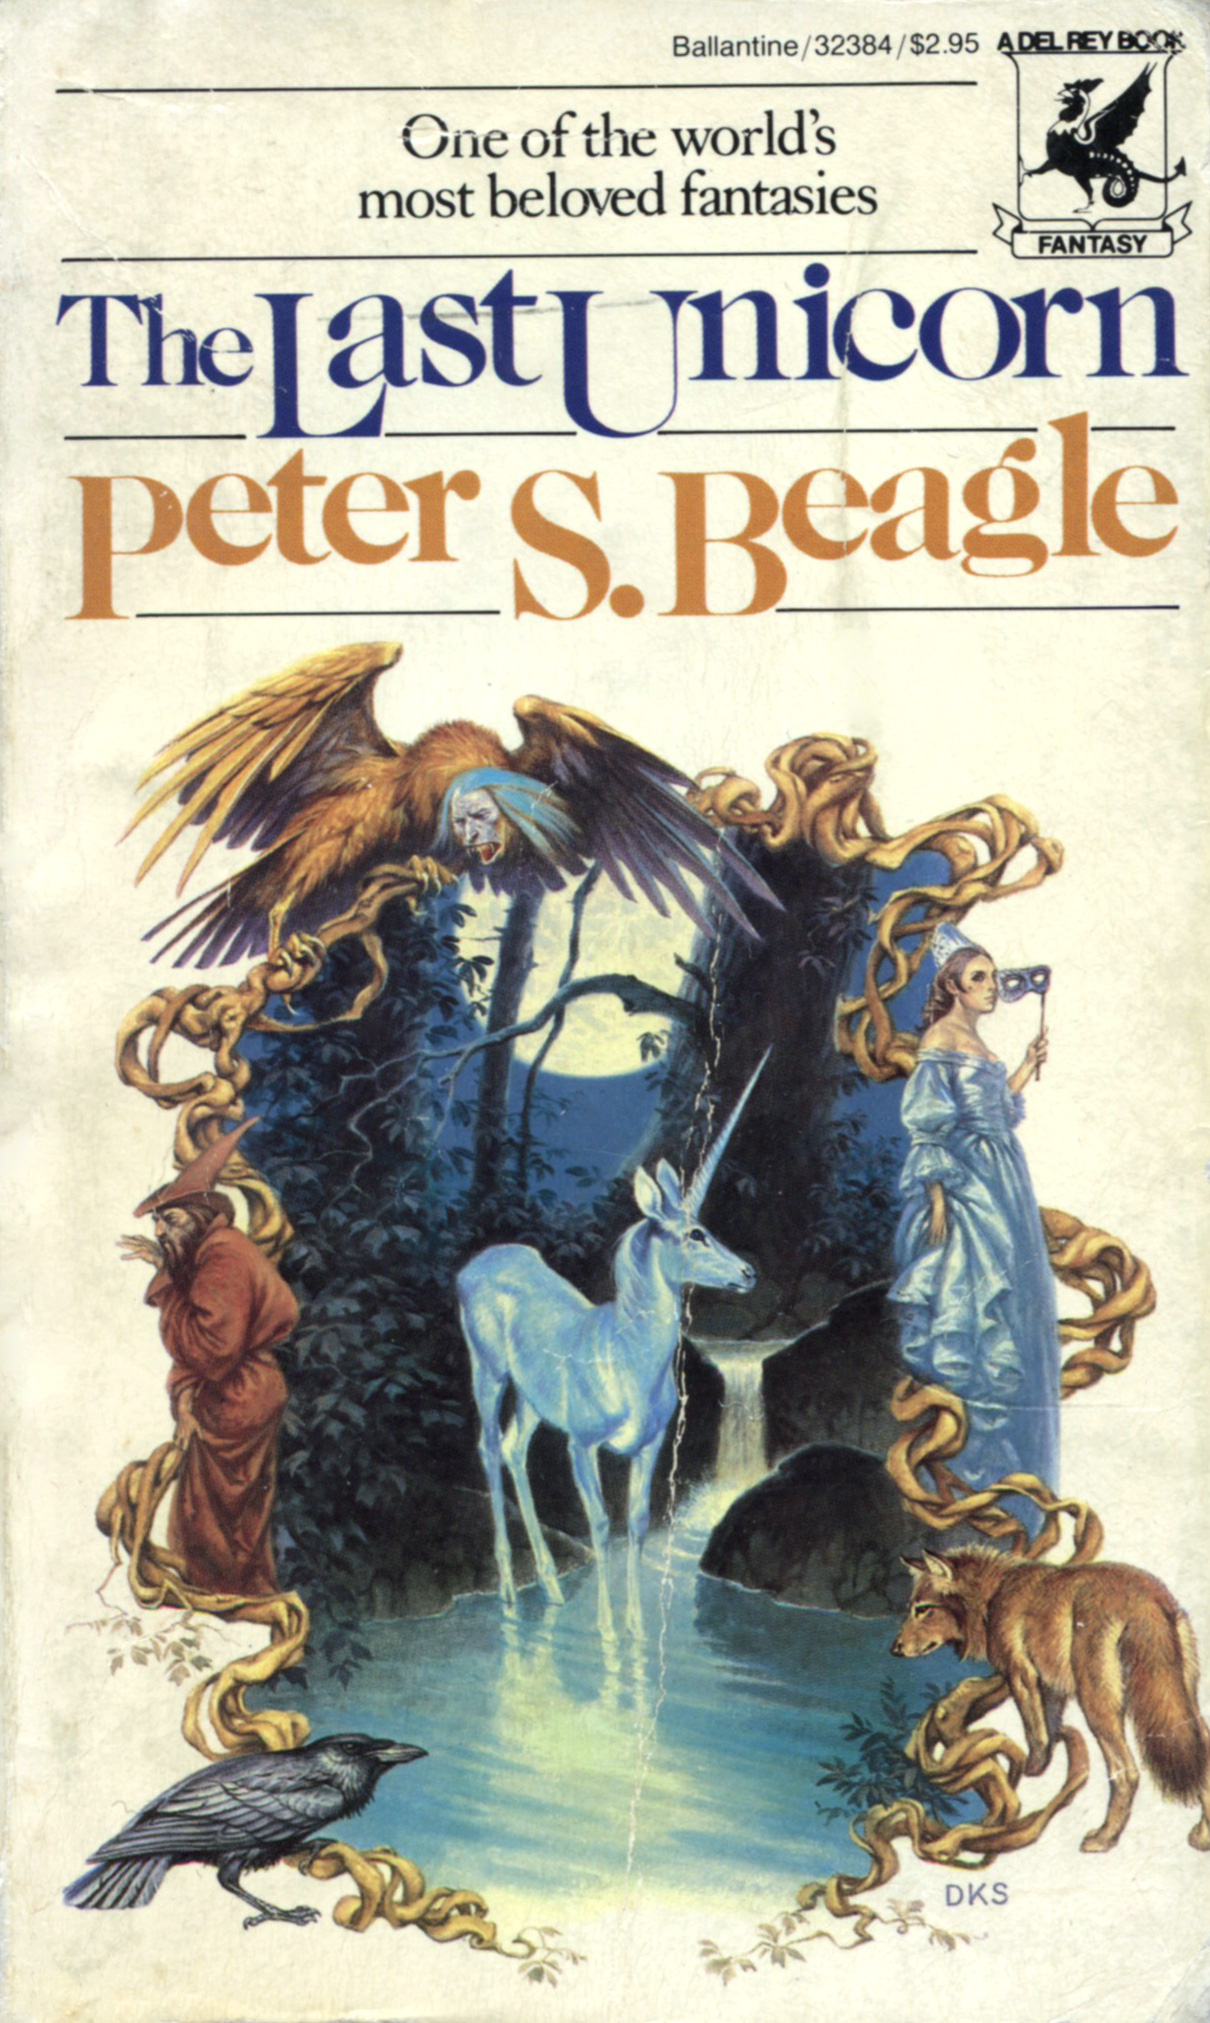 The Last Unicorn by Peter S Beagle